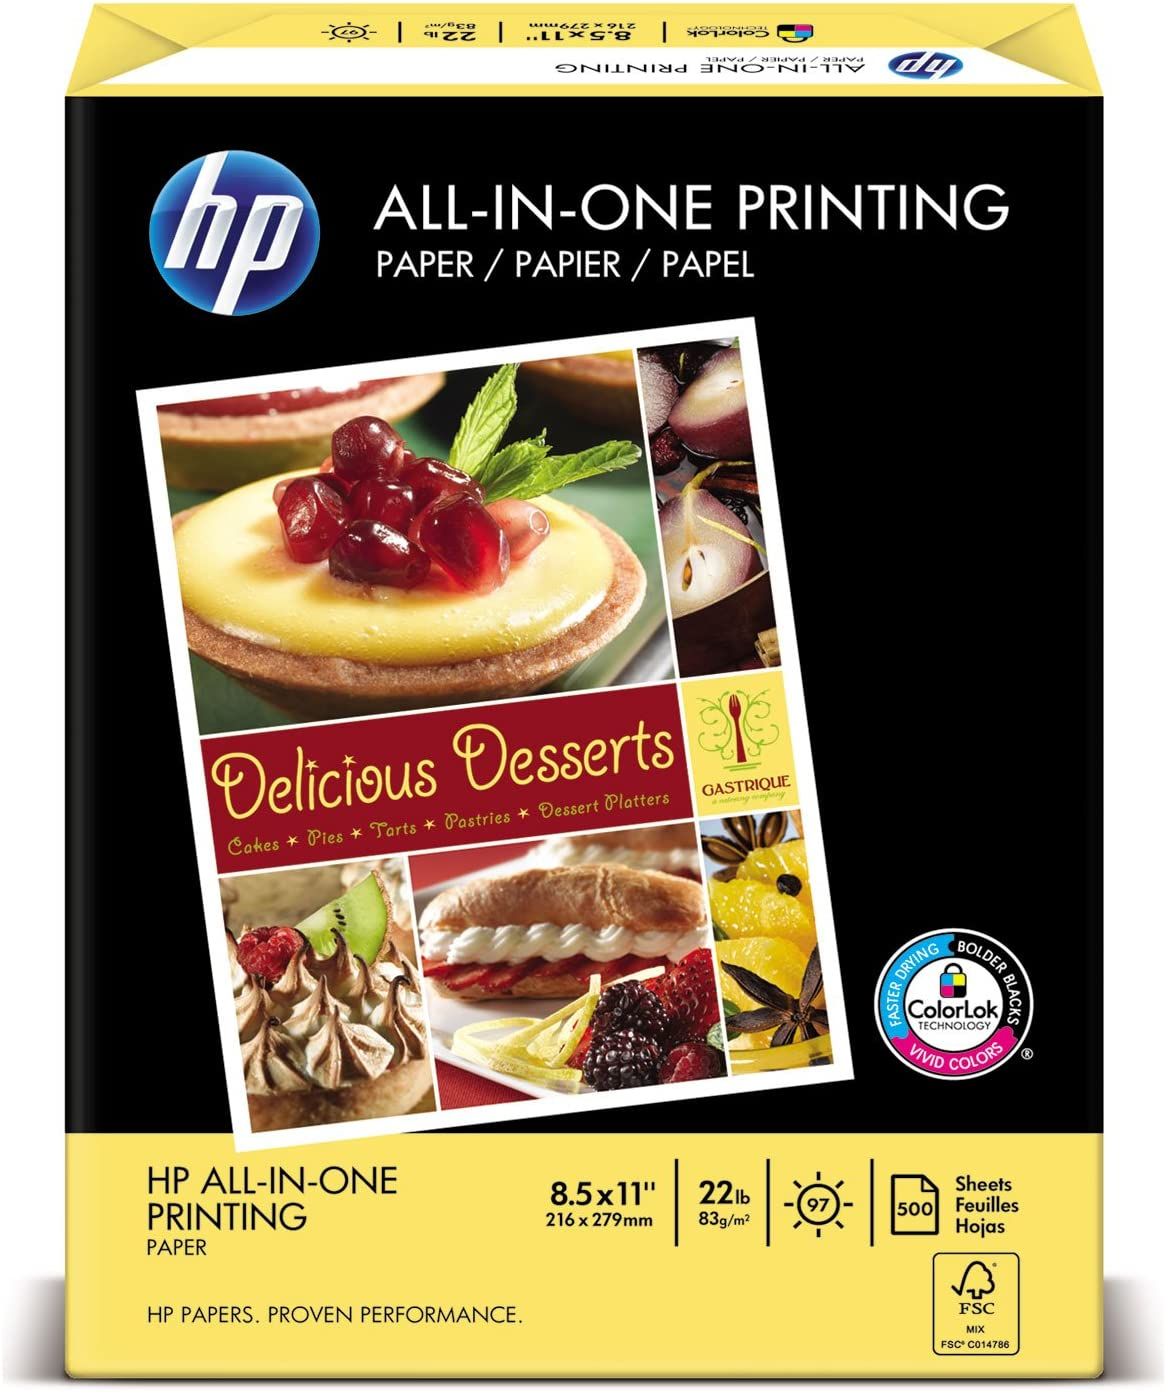 "HP All-In-One Printing Paper - Letter - 8.5"" x 11"" - 22lb - 96 GE/112 ISO (D65) Brightness - 500 / Ream - White"